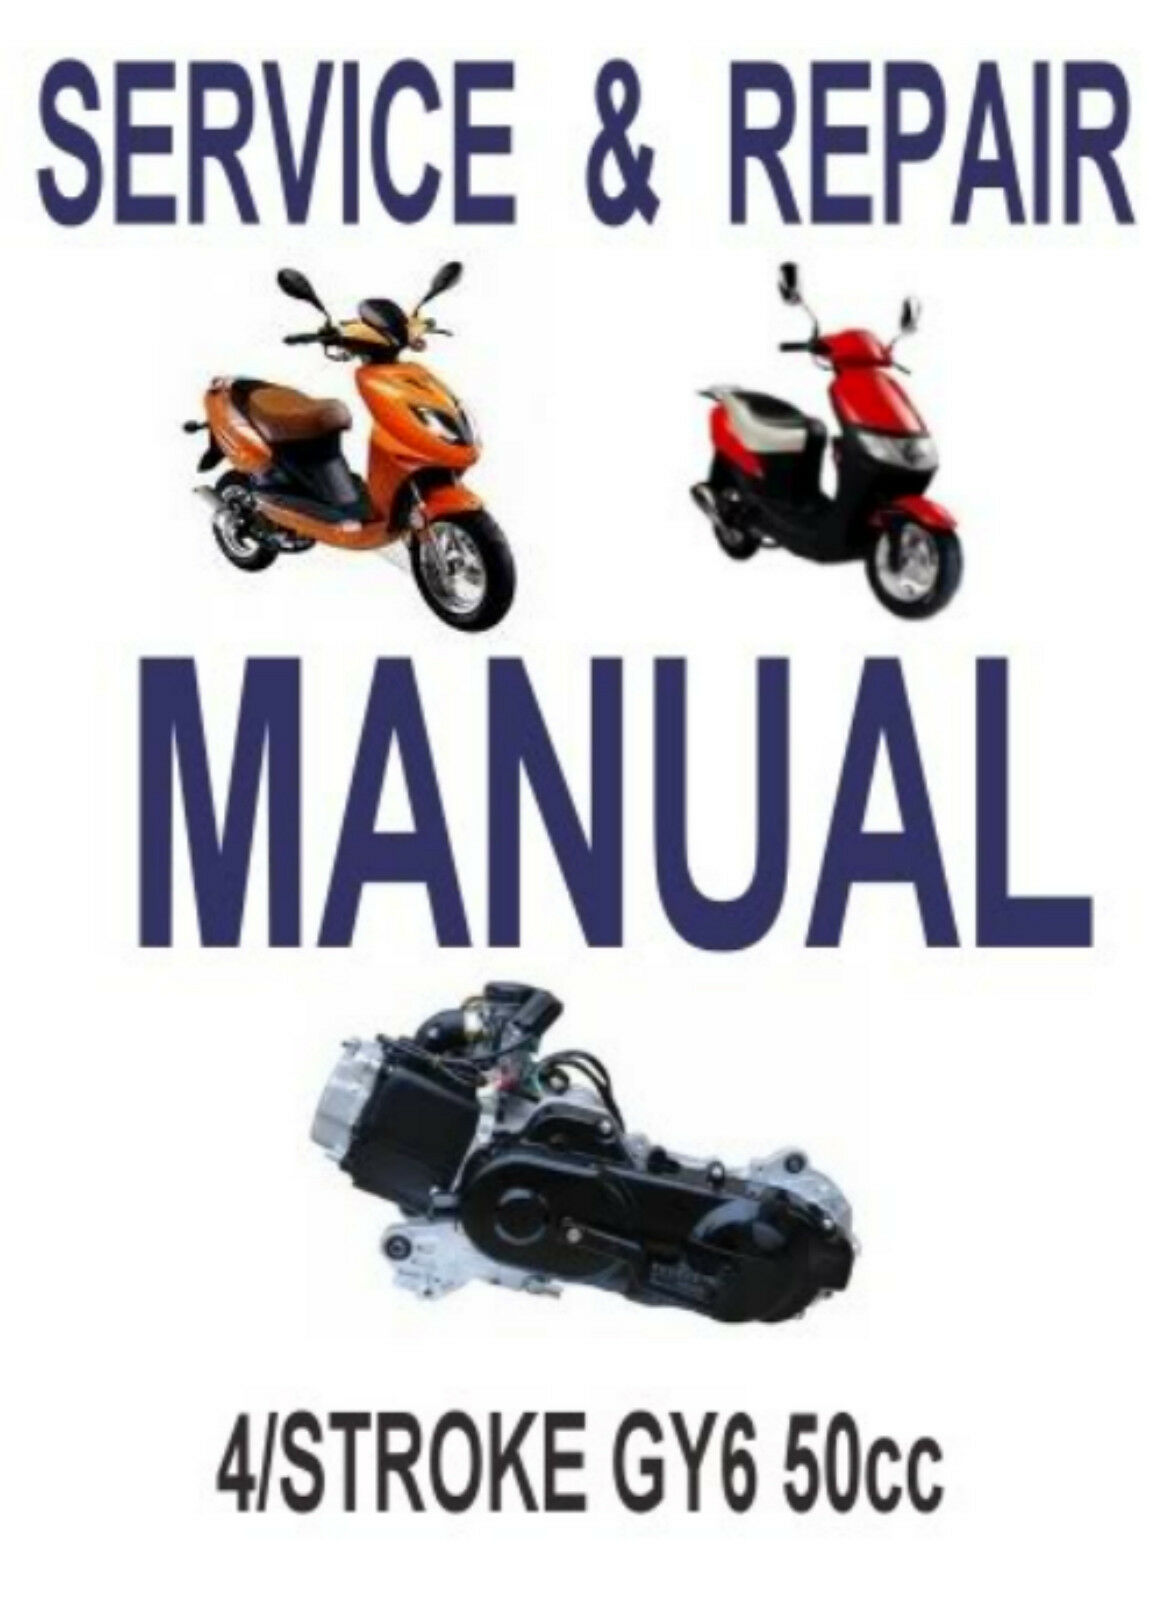 Chinese Scooter 50cc GY6 Service Repair Shop Manual on CD Jinlun MADAMI  Yamasaki 1 of 3 ...